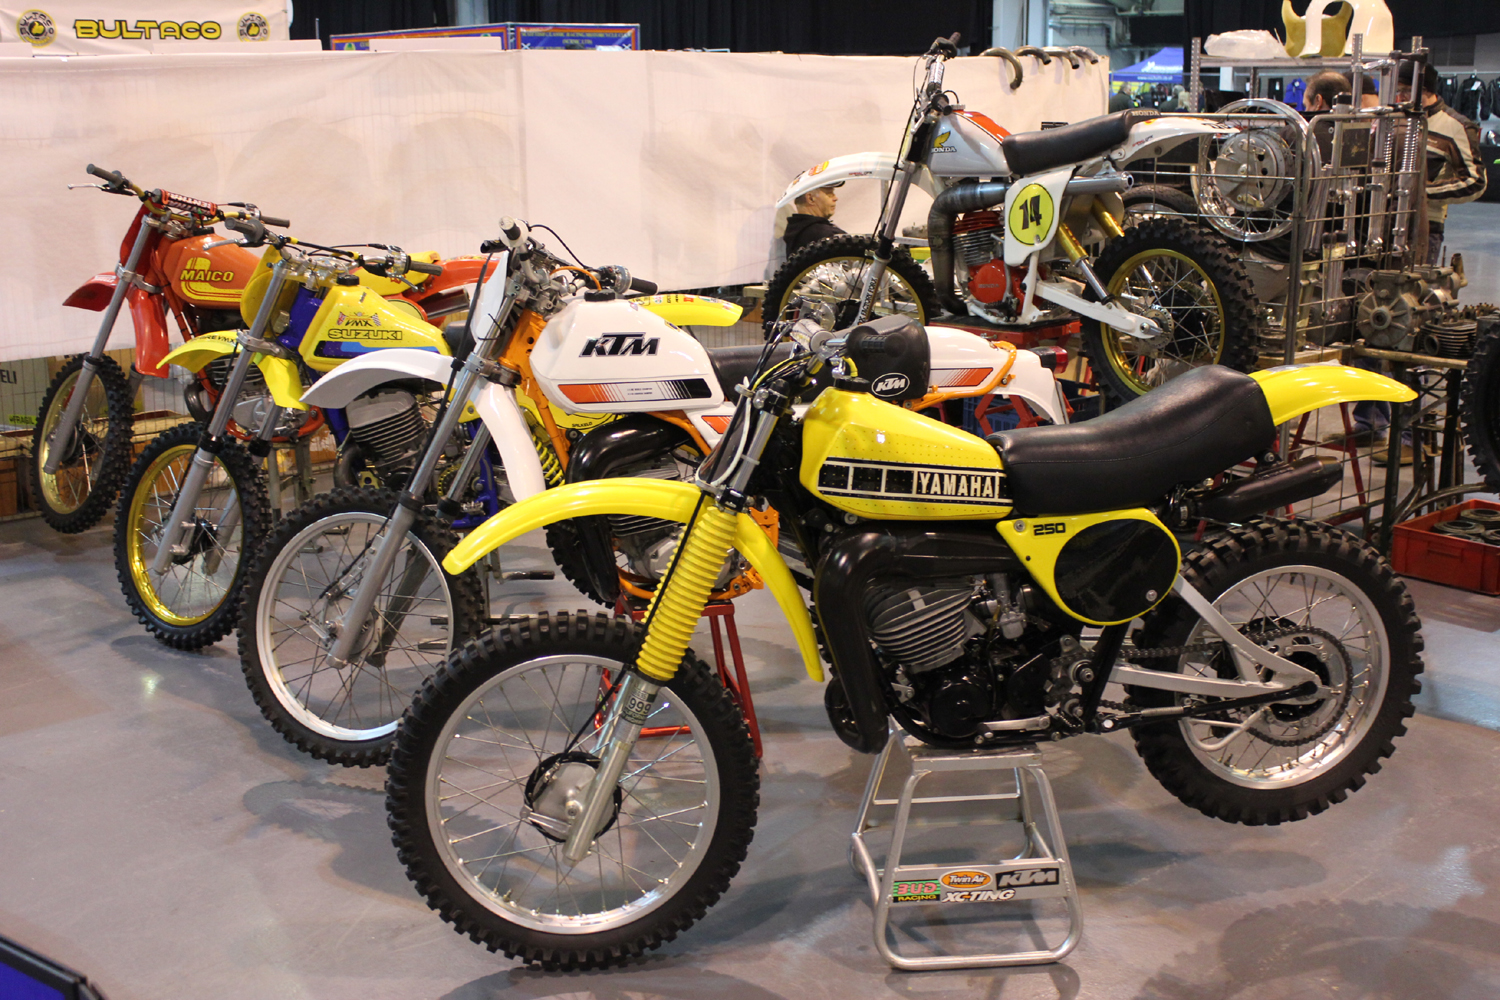 classicdirtbikerider.com-photo by Mr J-2015 Telford classic dirt bike show-YZ-KTM-SUZUKI-MAICO